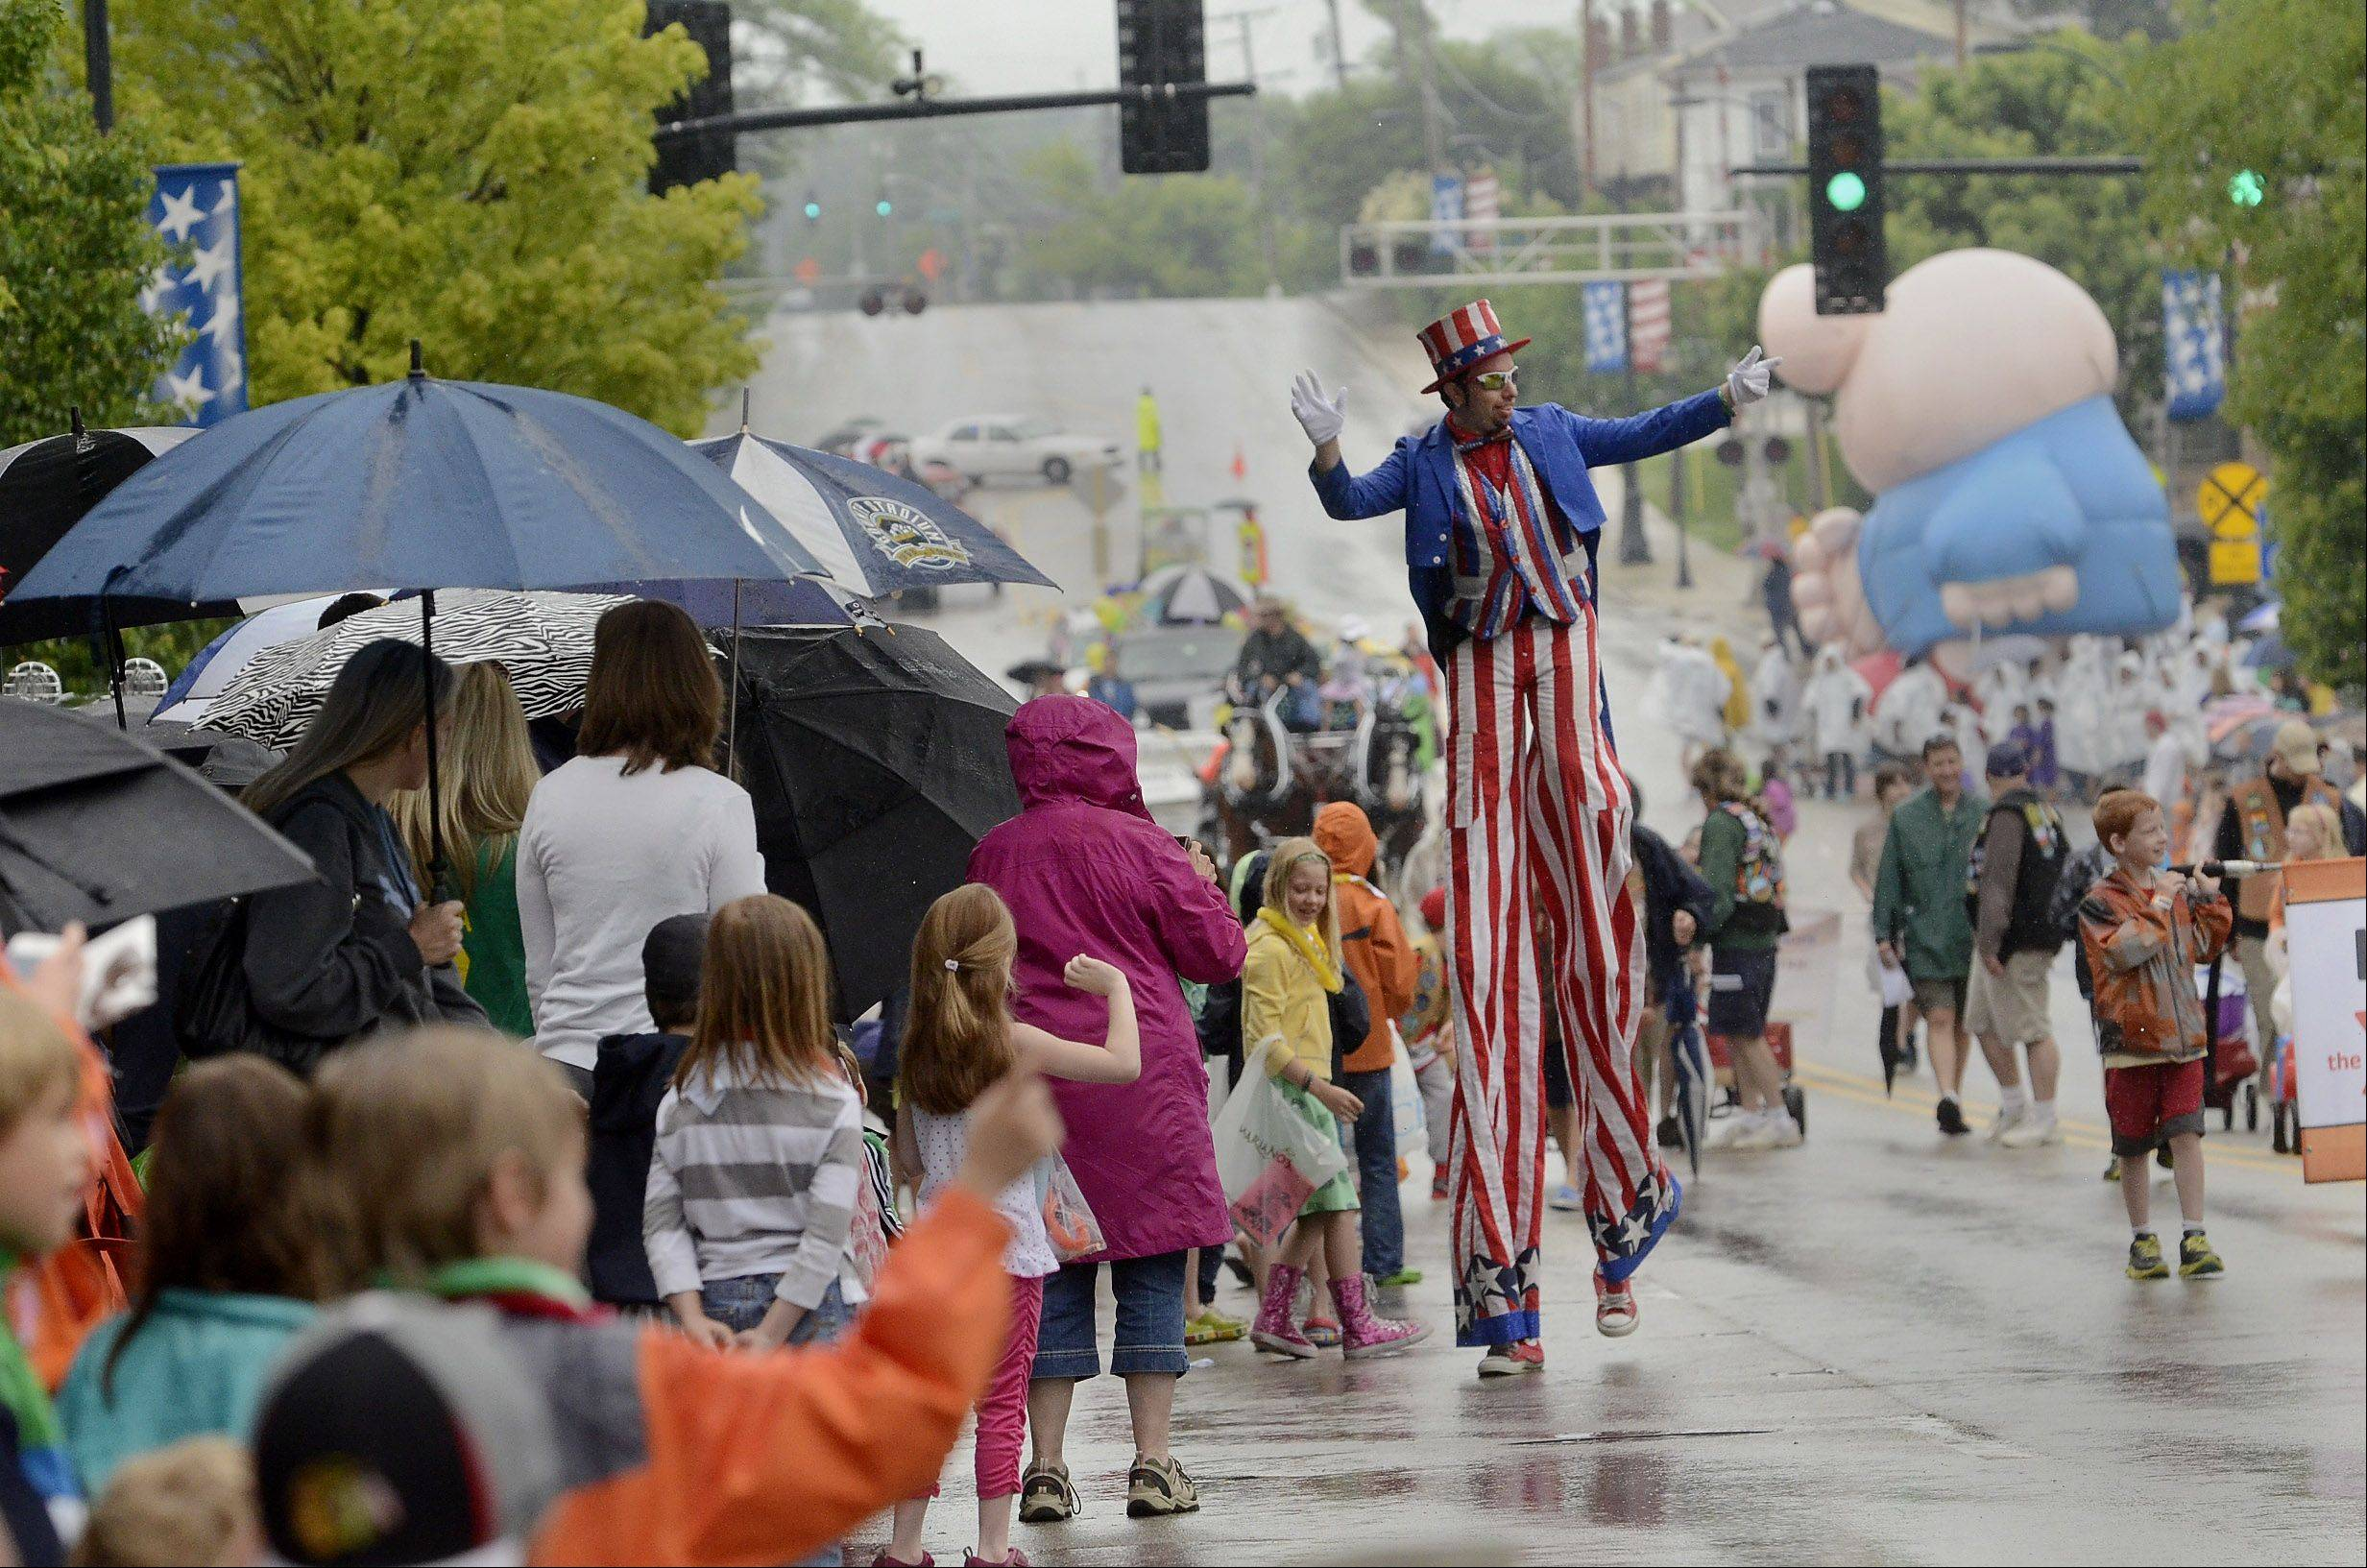 Tall Man Uncle Sam Jason Kollum waves to wet onlookers at Libertyville Days Parade on Saturday. Libertyville Days continues Sunday.